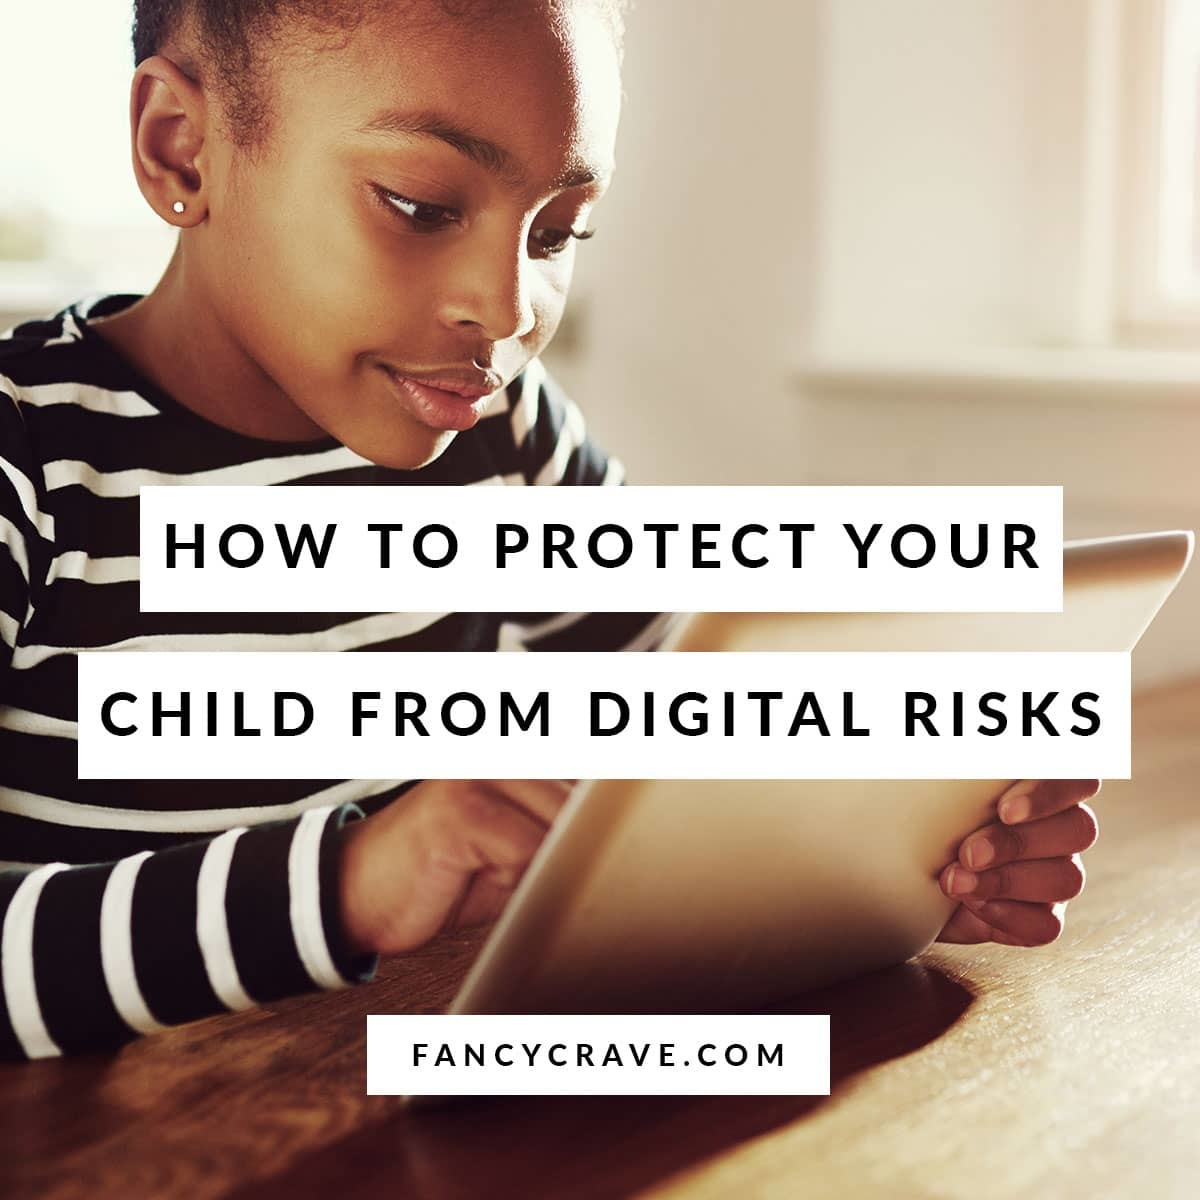 Protect-Your-Child-from-Digital-Risks-min